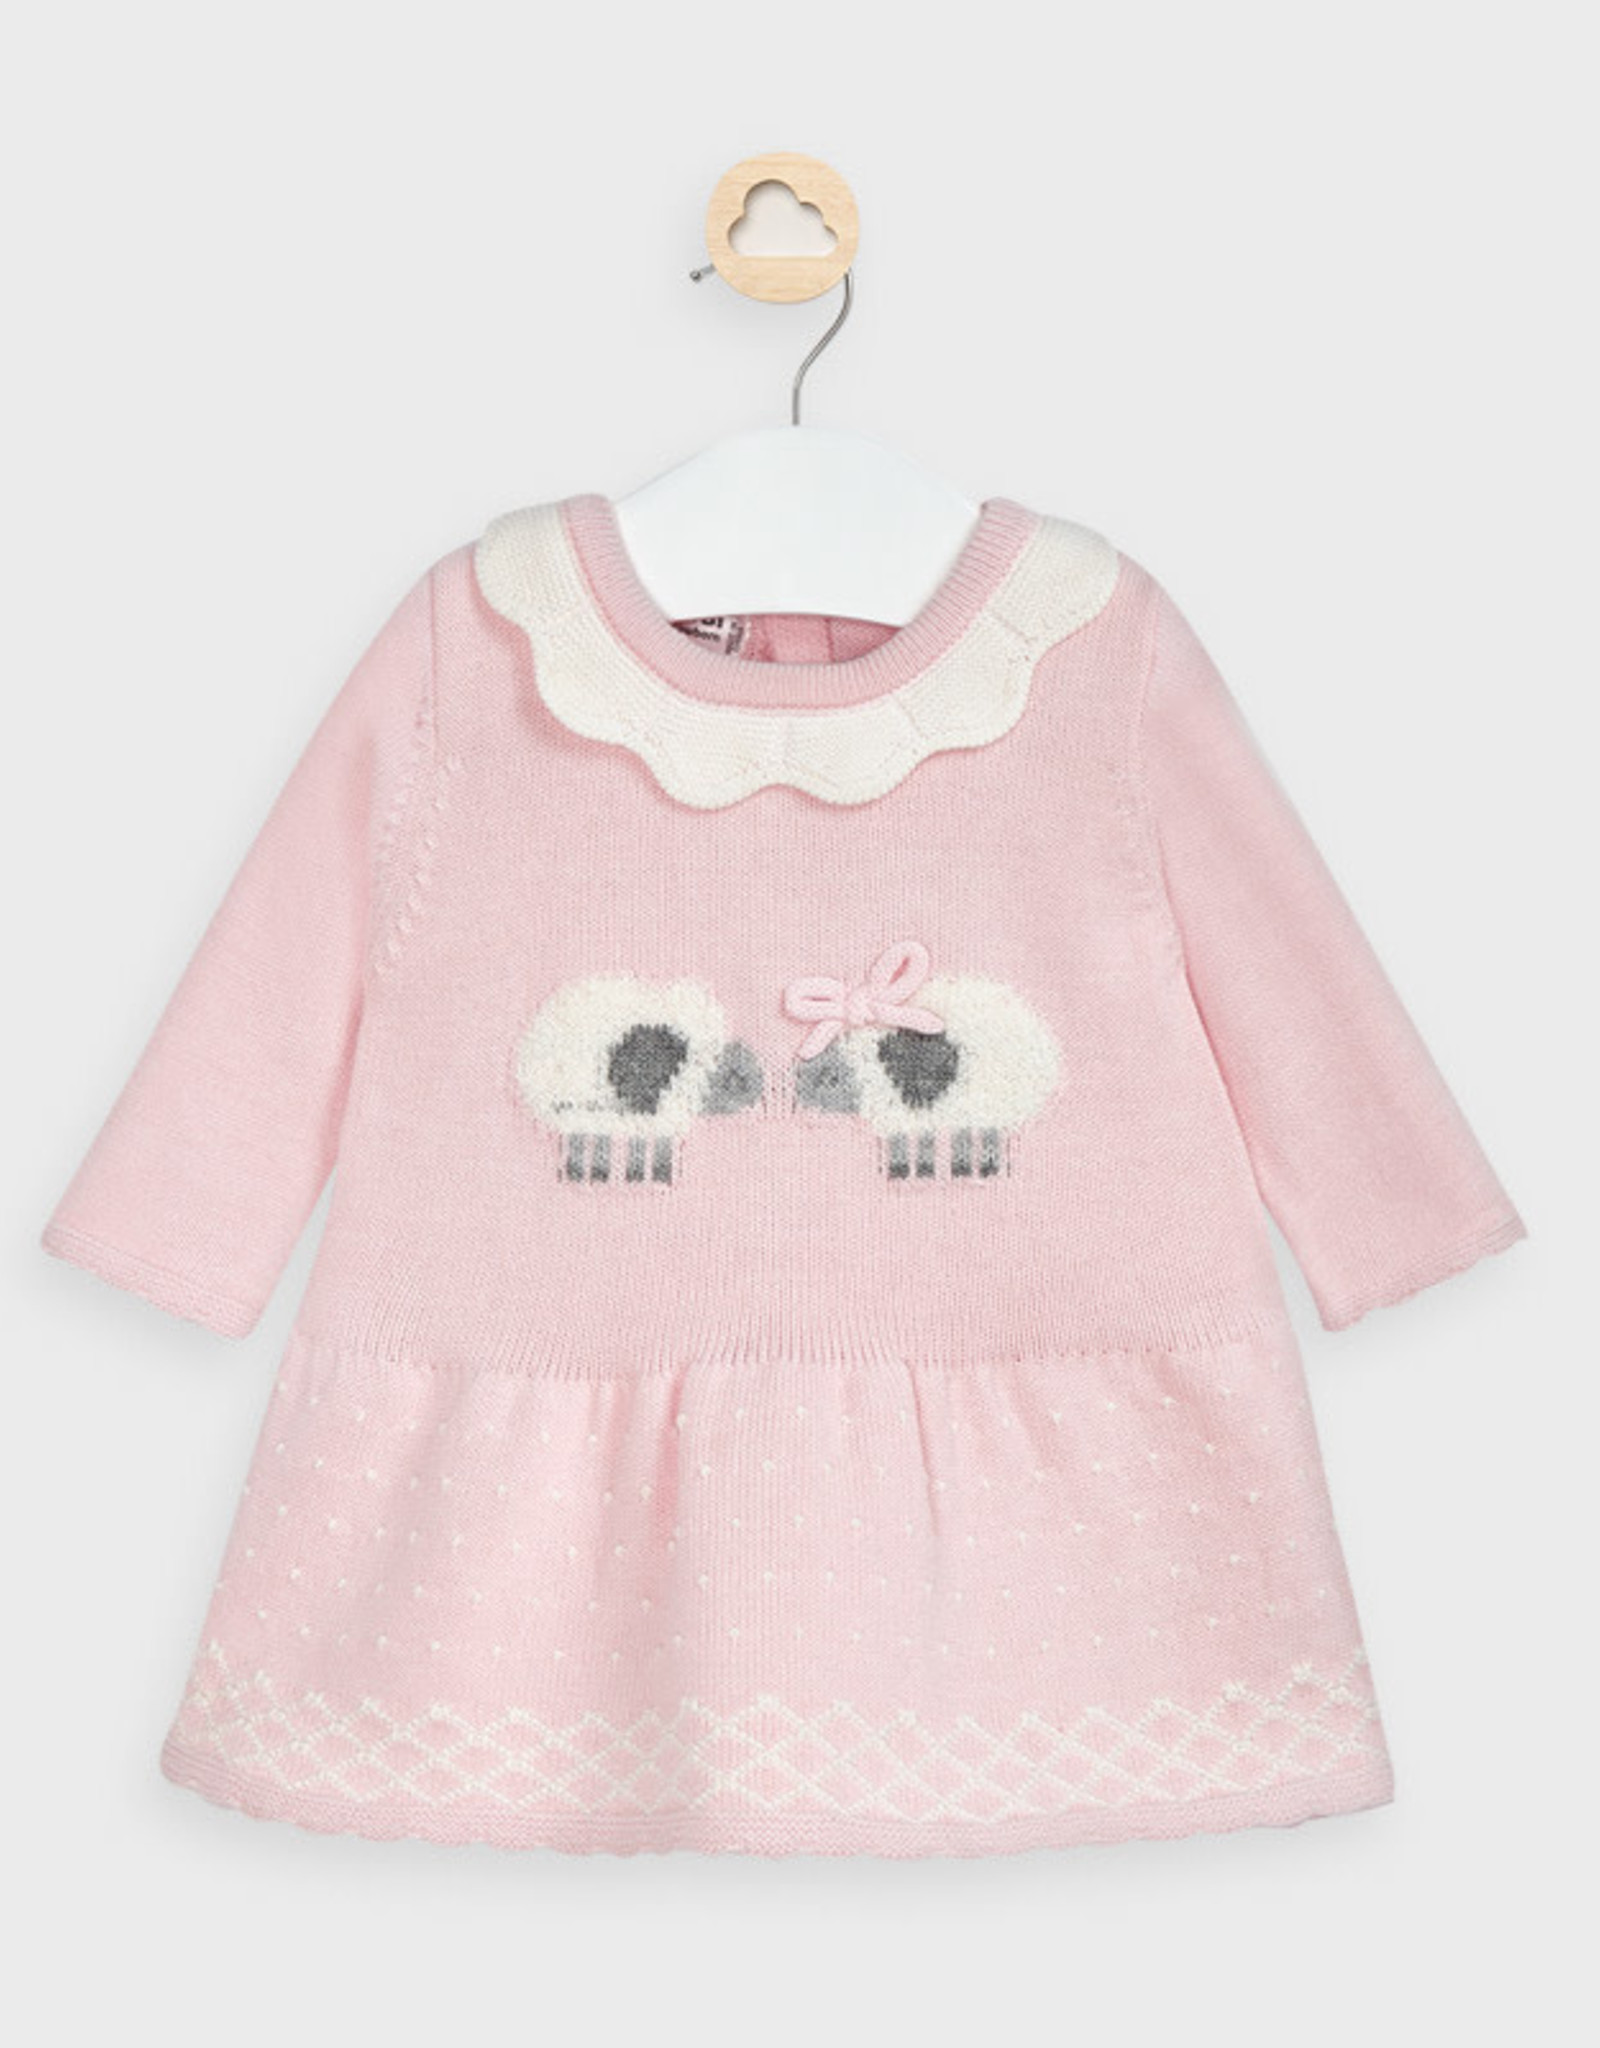 Mayoral Knit Dress - Sheep - Light Pink/white